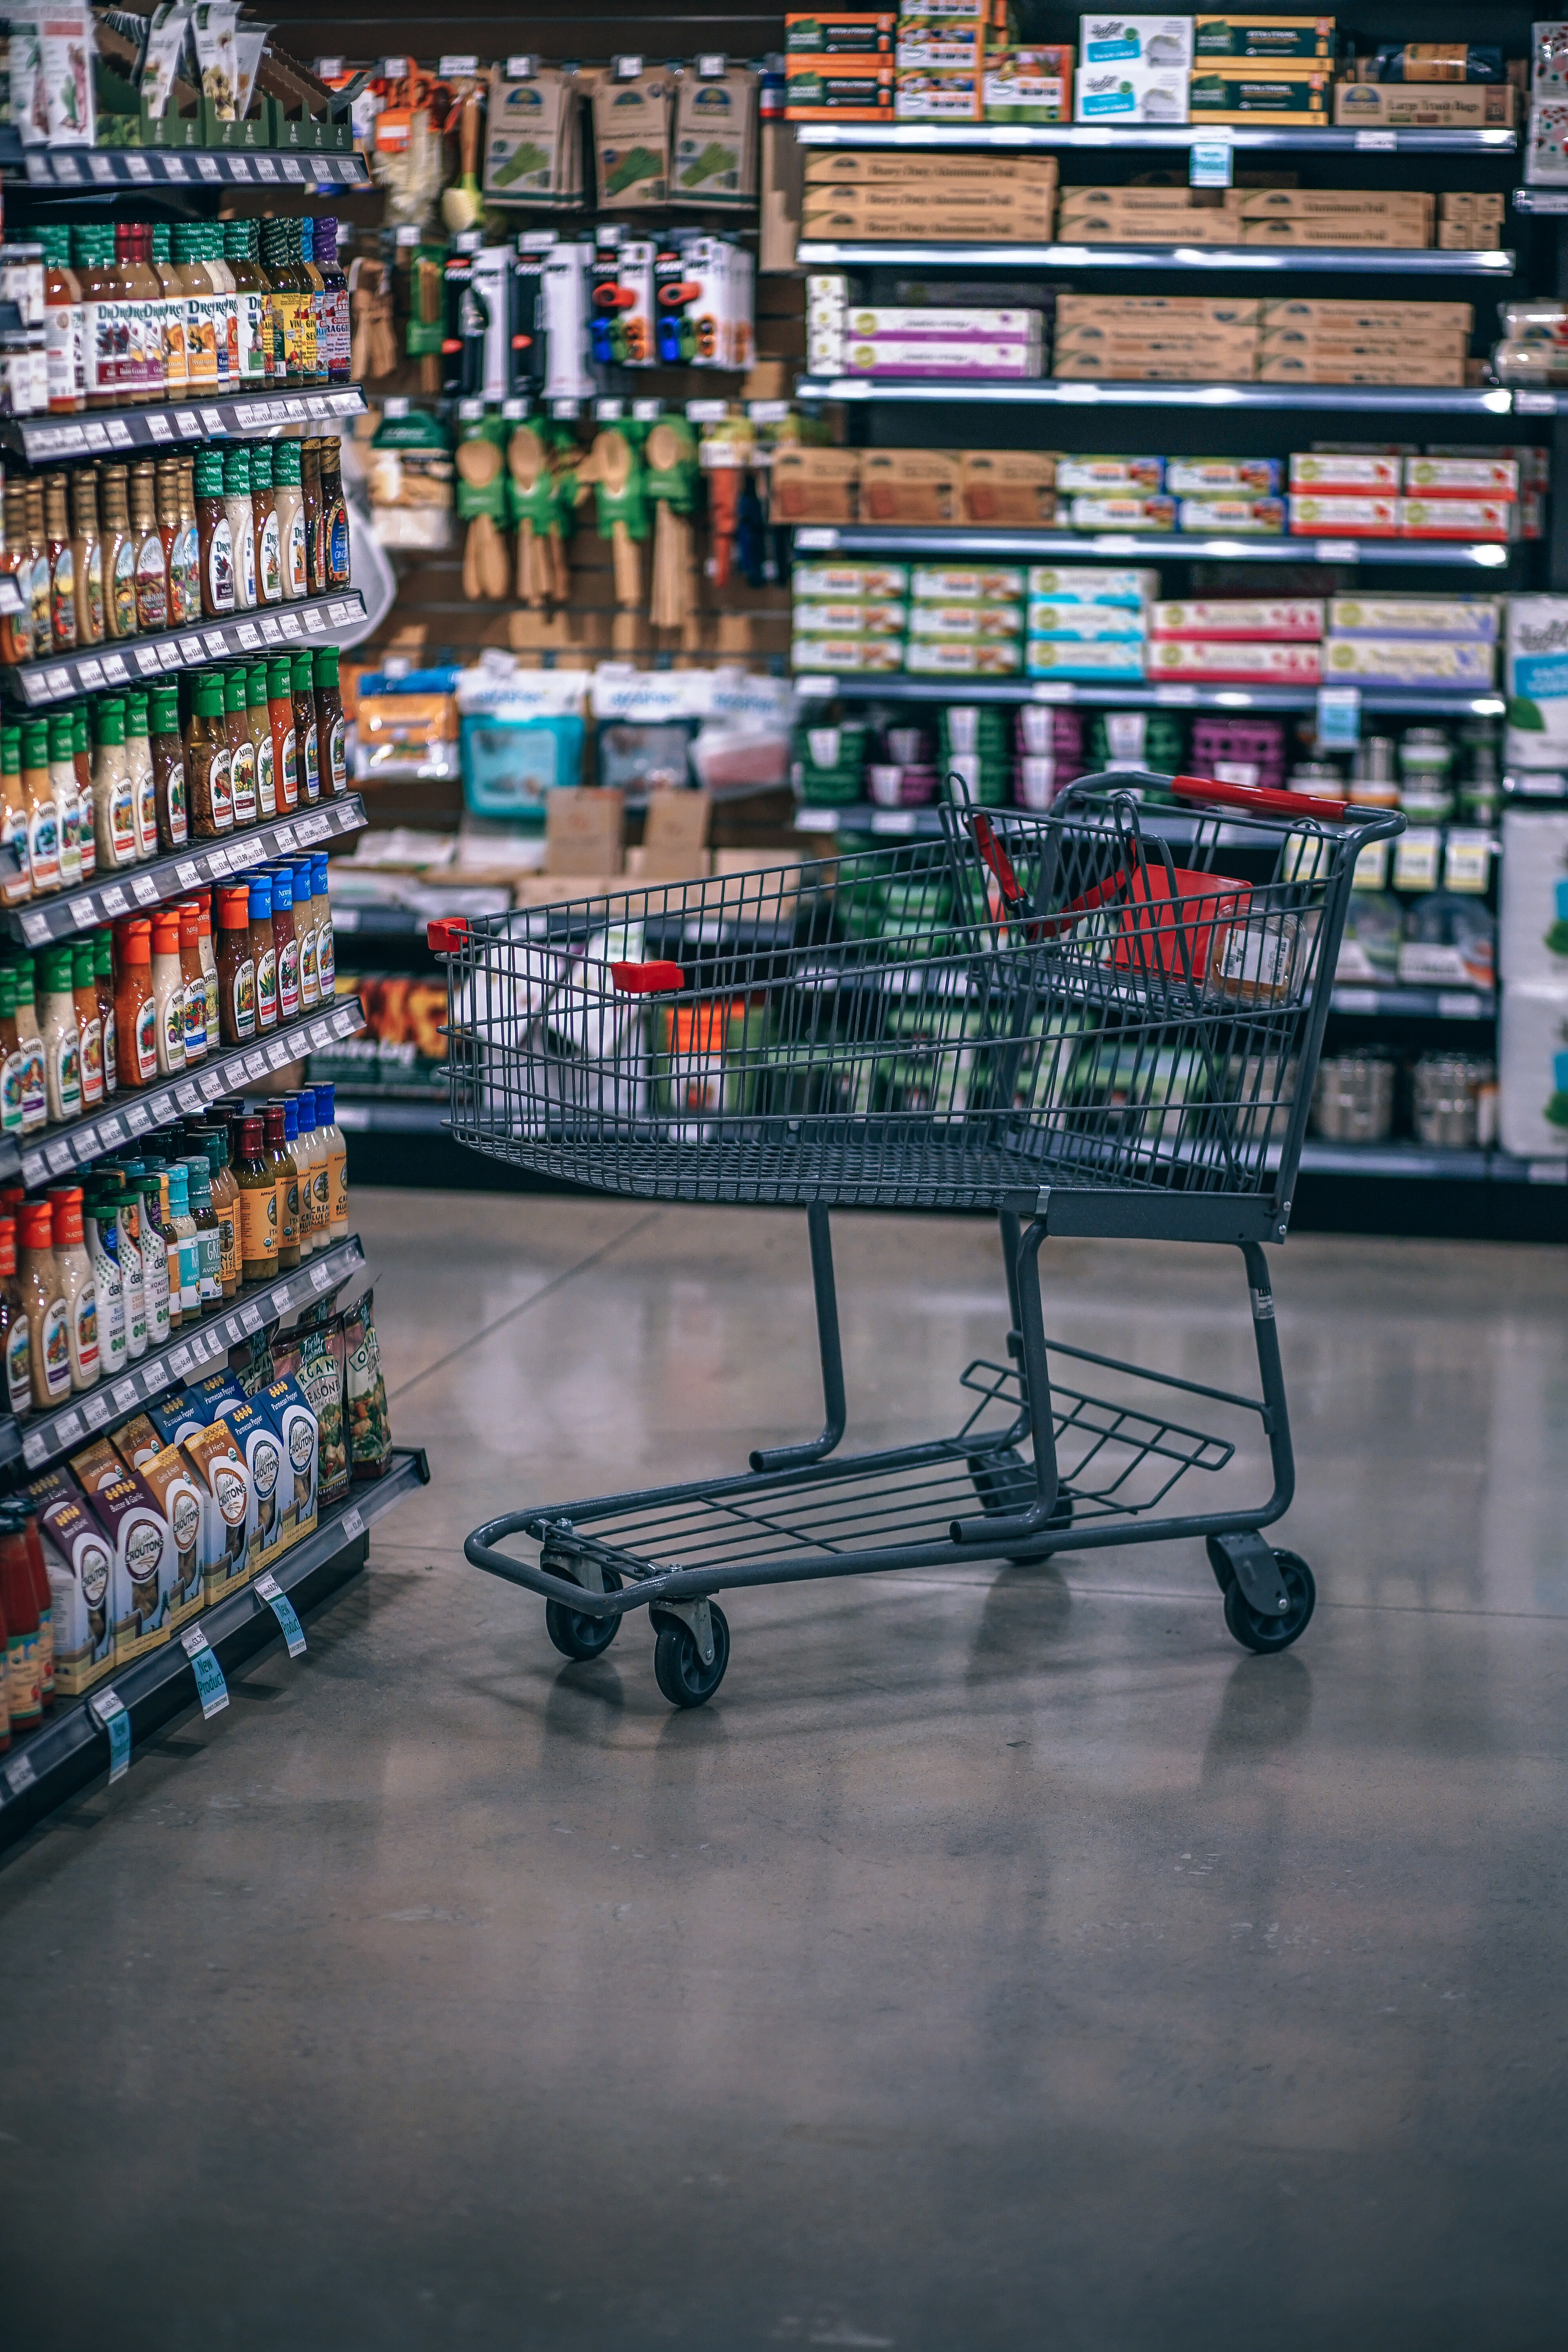 abandoned cart in a grocery store